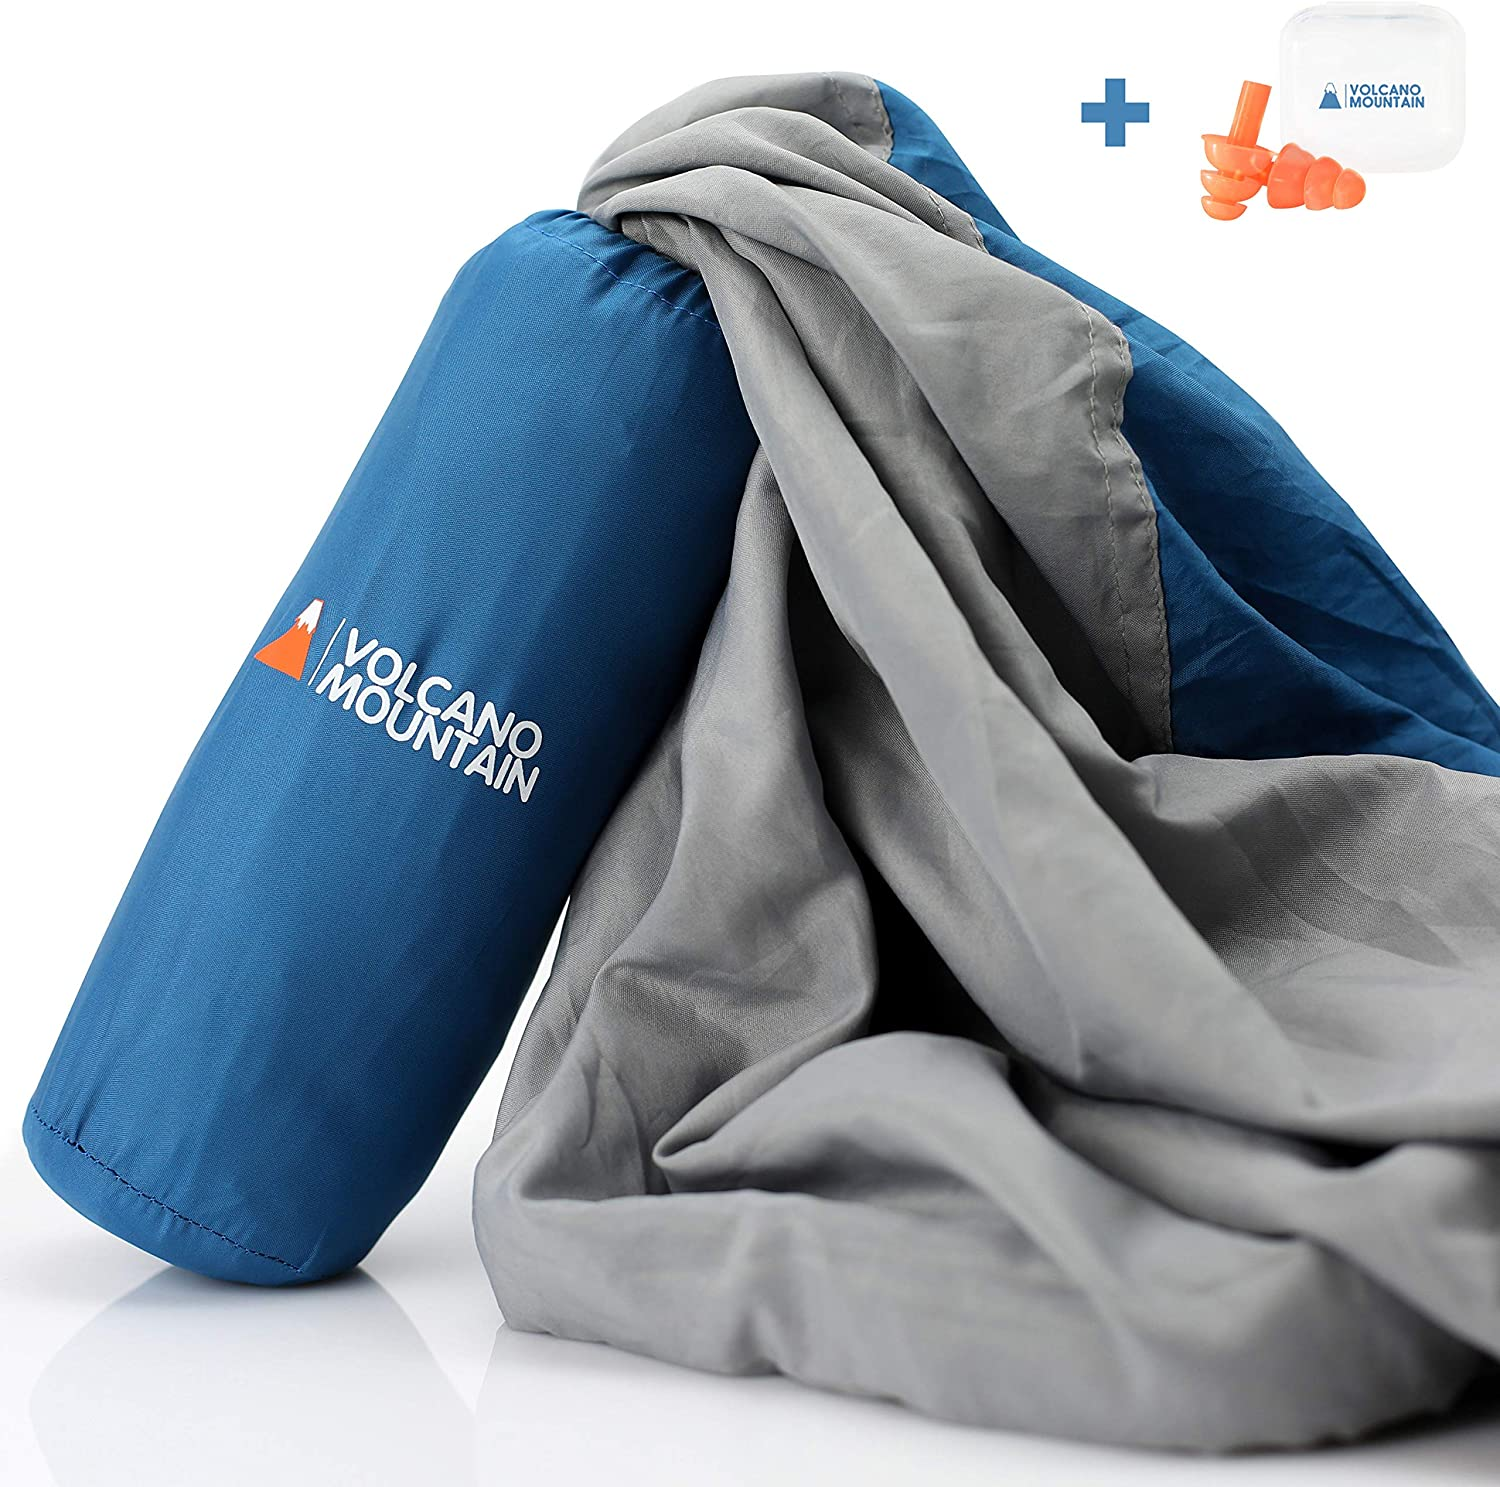 Volcano Mountain Sleeping Bag Liner - Adult Sleep Sack -Travel Sleeping Liner- Lightweight Camping Sheets Great For Camping, Traveling, Backpacking & Hotels.